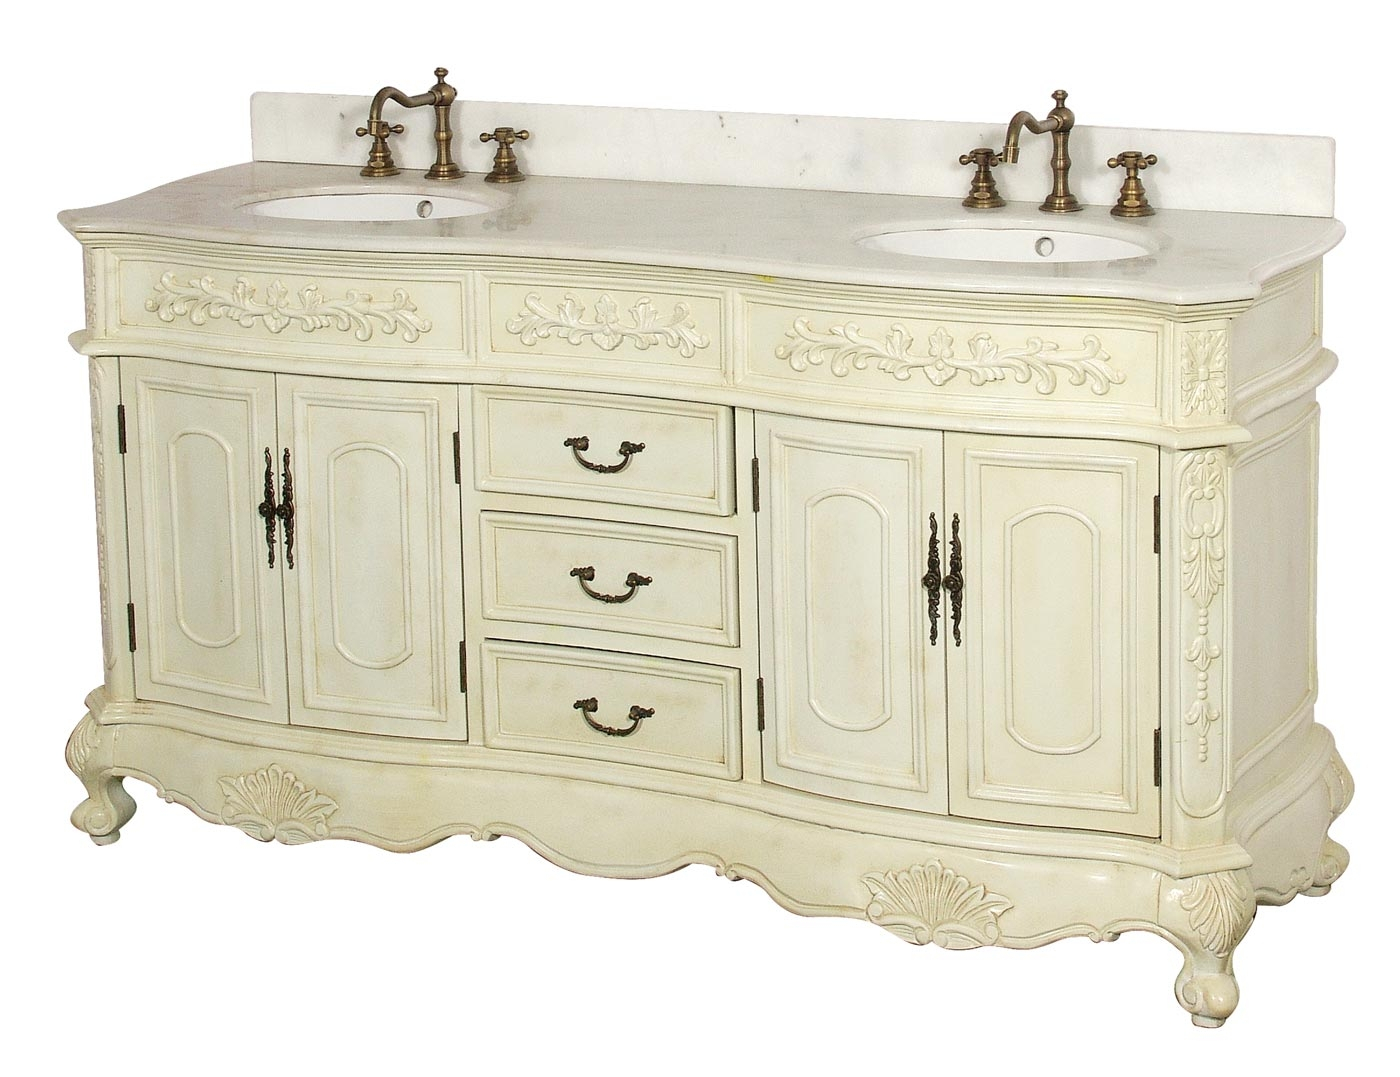 Amazing Bathroom : Exciting Vintage Bathroom Vanity Sink Cabinets Vintage within Antique Bathroom Sinks